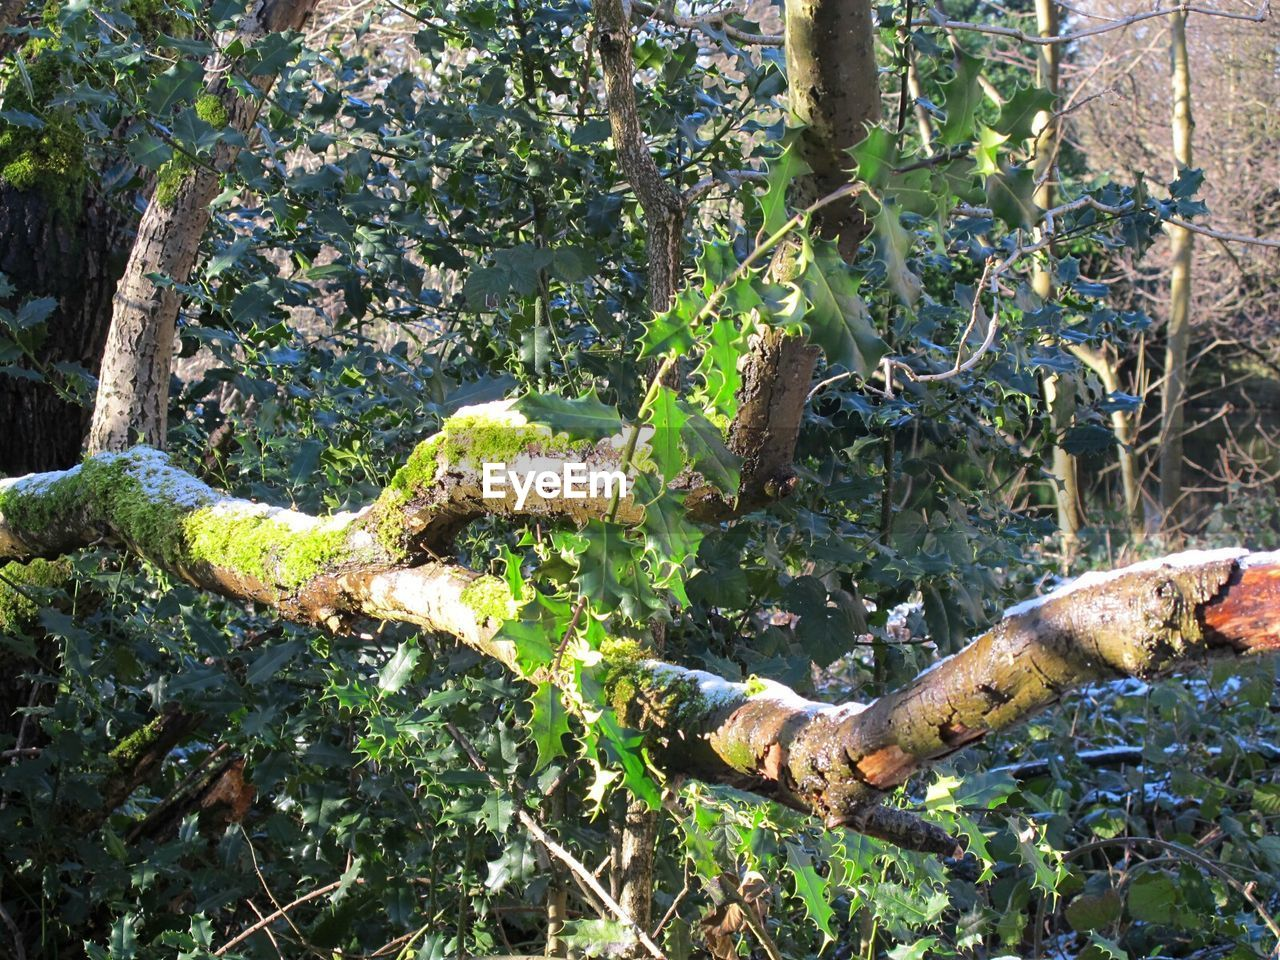 tree, nature, growth, no people, day, leaf, green color, tree trunk, outdoors, forest, branch, plant, banana tree, fruit, fungus, beauty in nature, rotting, close-up